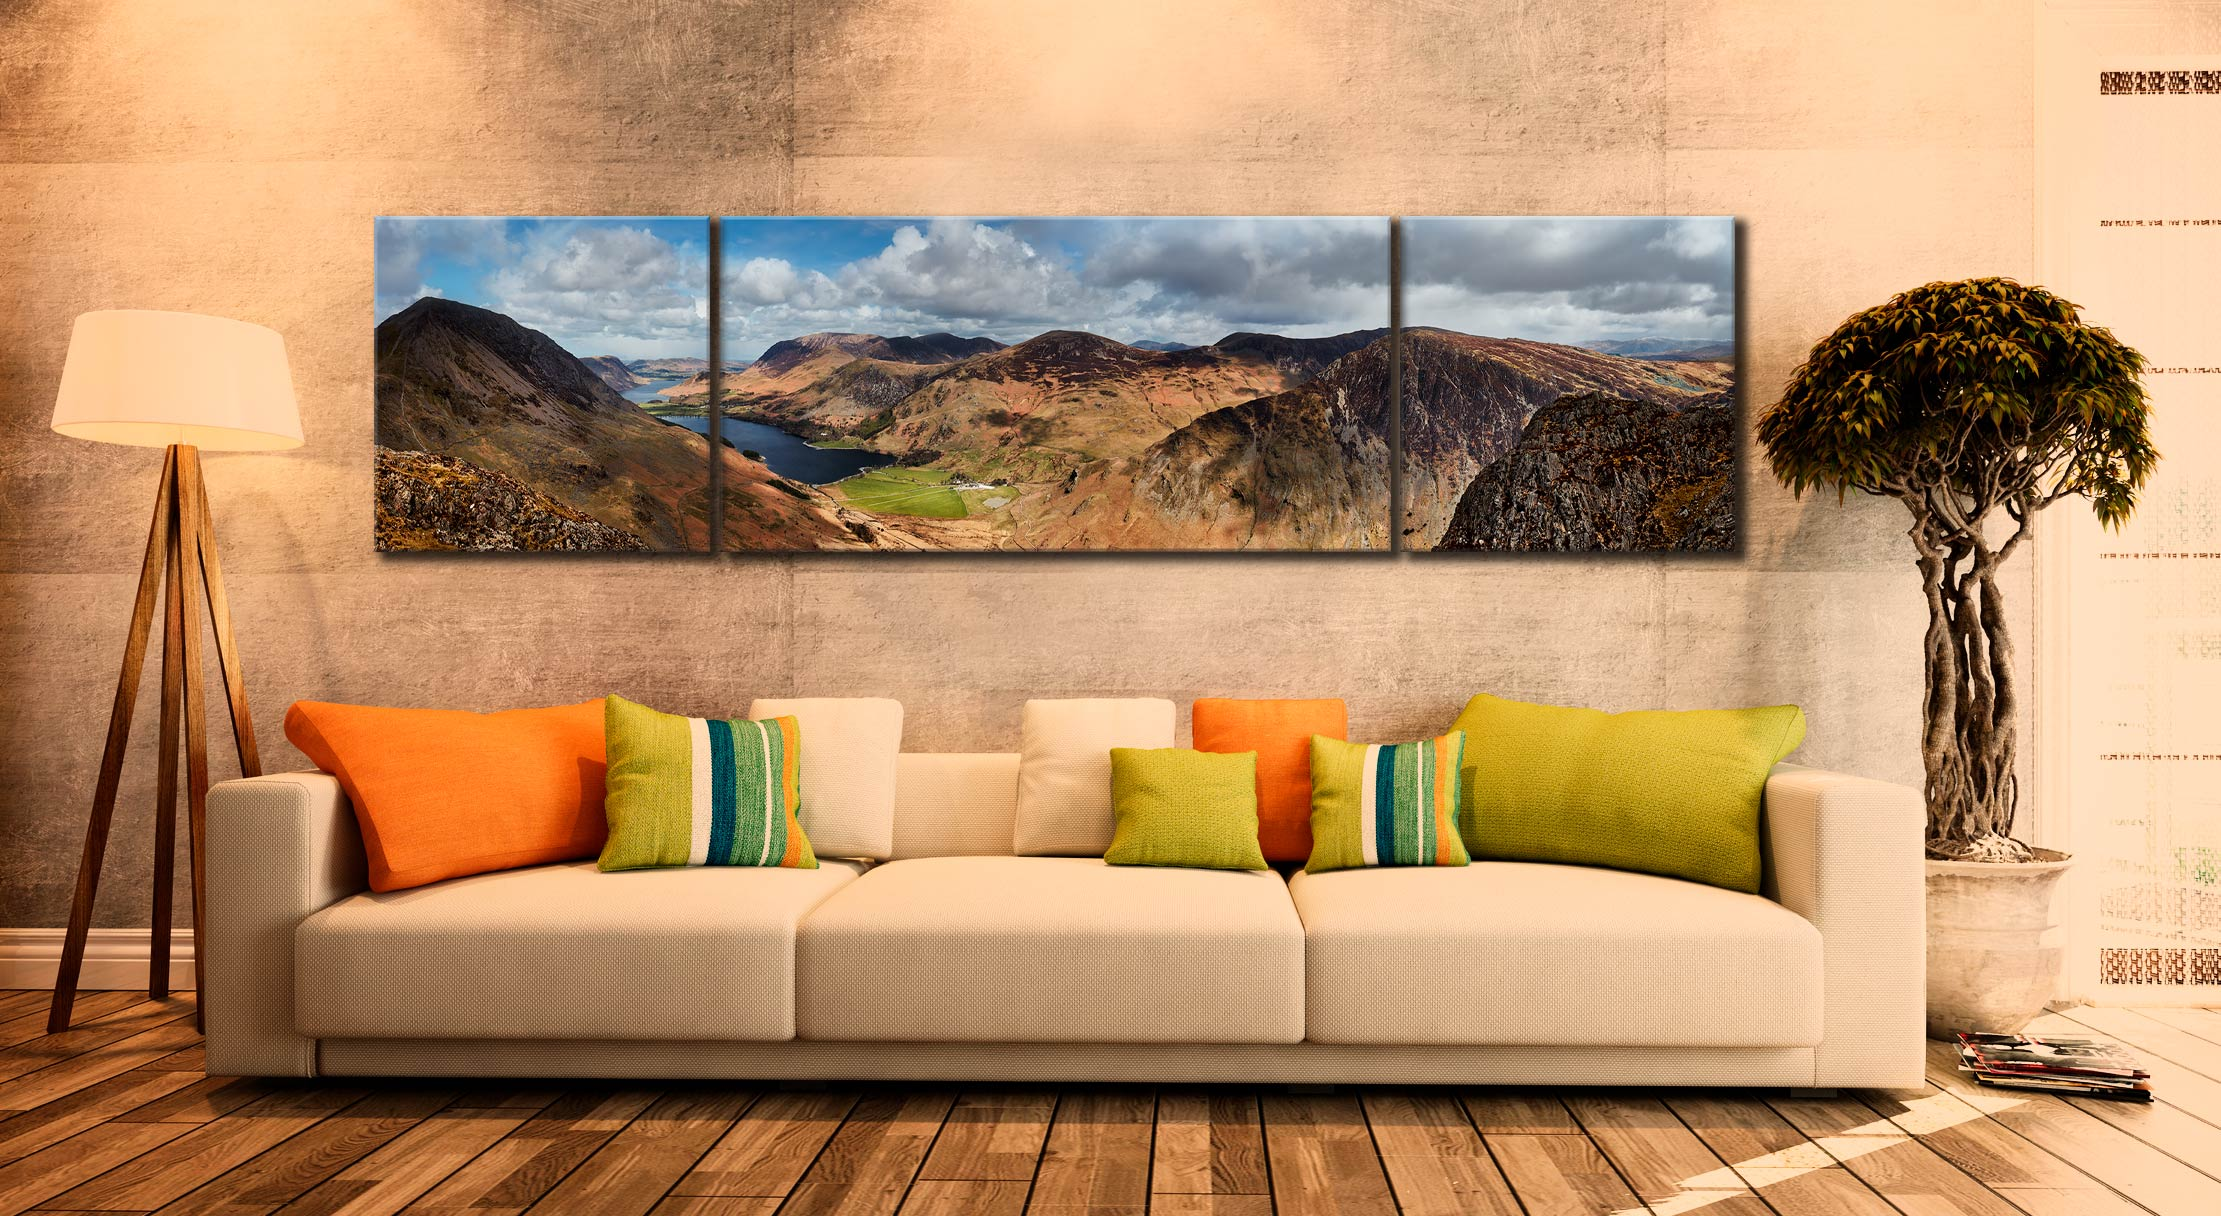 Fleethwith to High Crag - 3 Panel Wide Centre Canvas on Wall